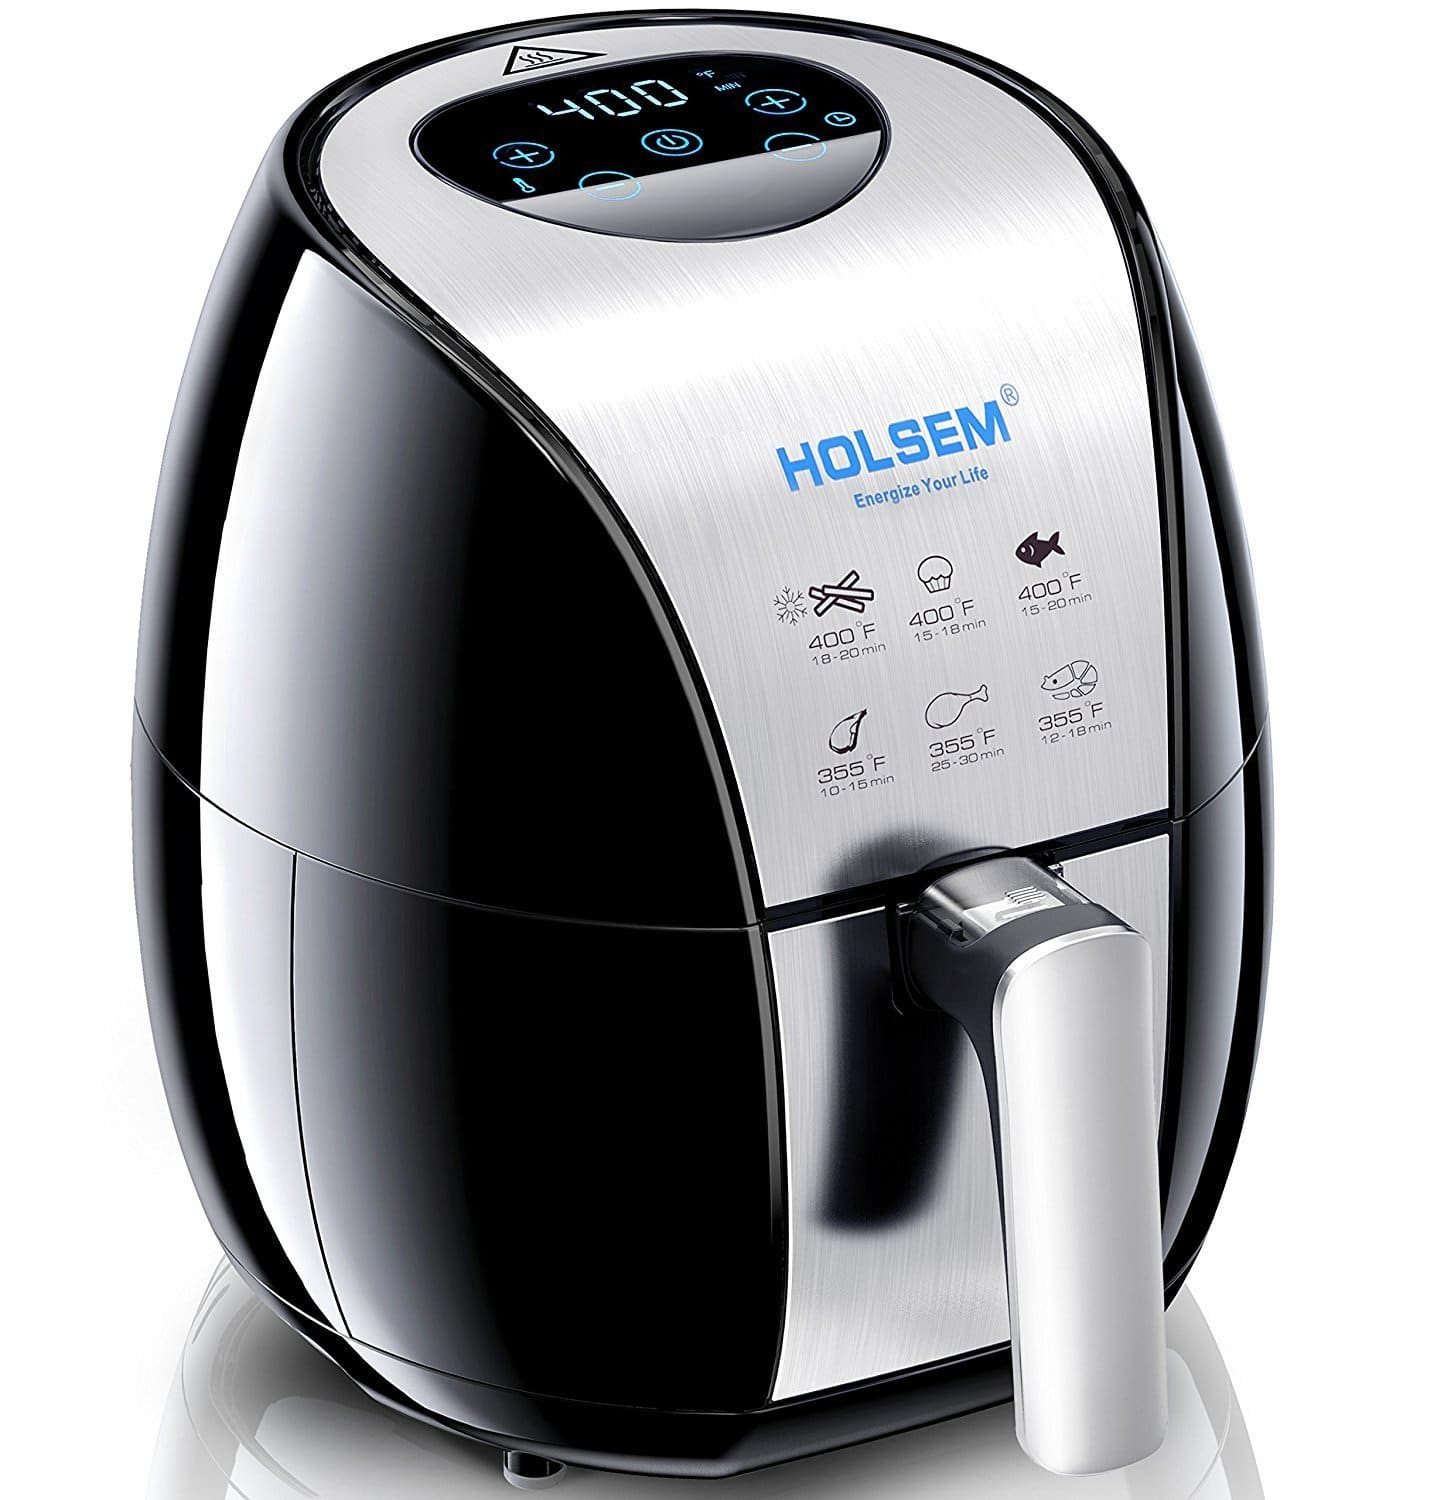 Air Fryer with Rapid Air Circulation System 3.4 QT Capacity $64.49 AC + FS Prime